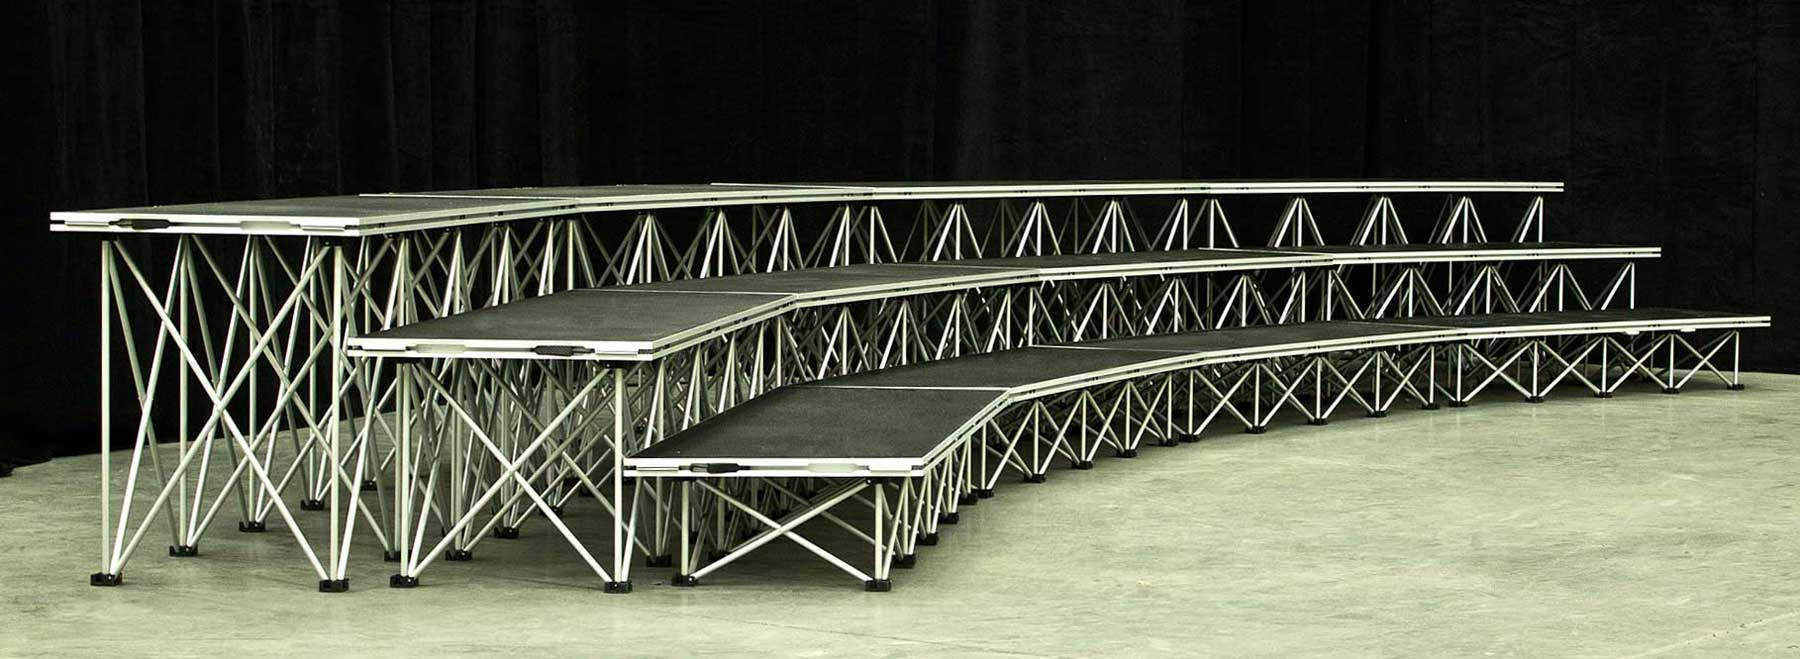 XL Stage choir riser set up from Allstar Show Industries is mudukar staging made simple